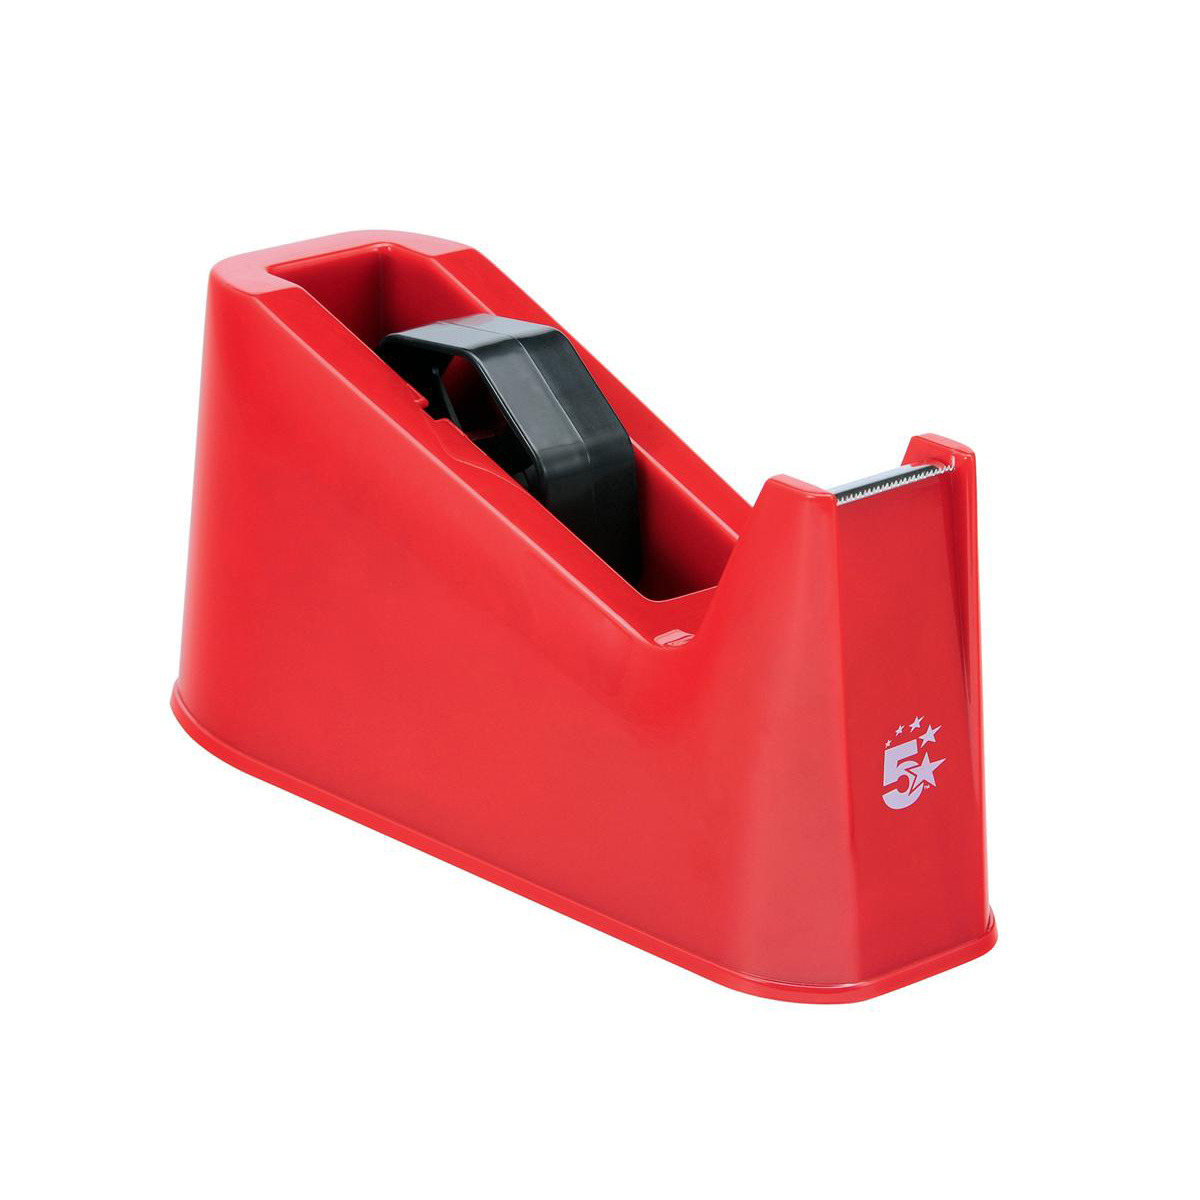 Tape Dispensers 5 Star Office Tape Dispenser Desktop Weighted Non-slip Roll Capacity 25mm Width 75m Length Max Red